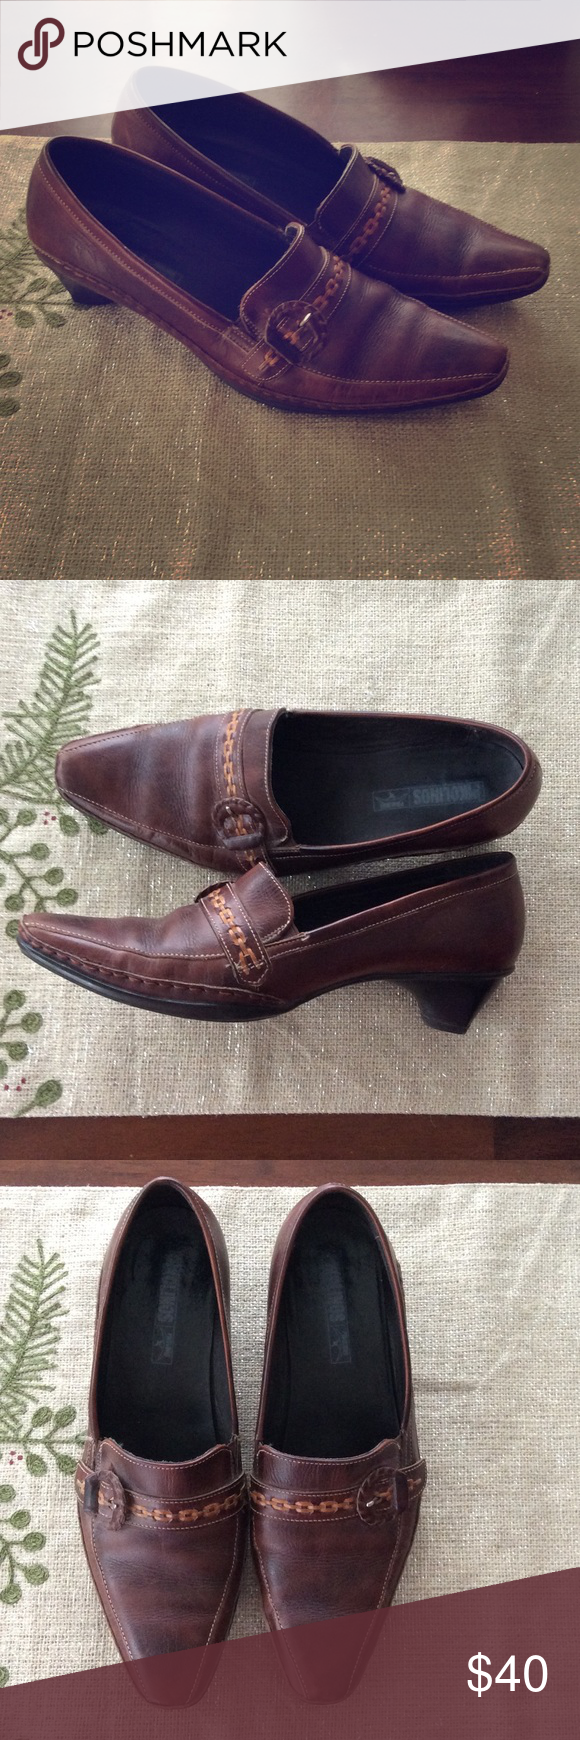 """GUC Pikolinos Heeled Loafer GUC Pikolinos heeled loafer. Brown with lighter brown stitch and buckle detailing. Heel measures 1.75"""". Size 41 PIKOLINOS Shoes"""